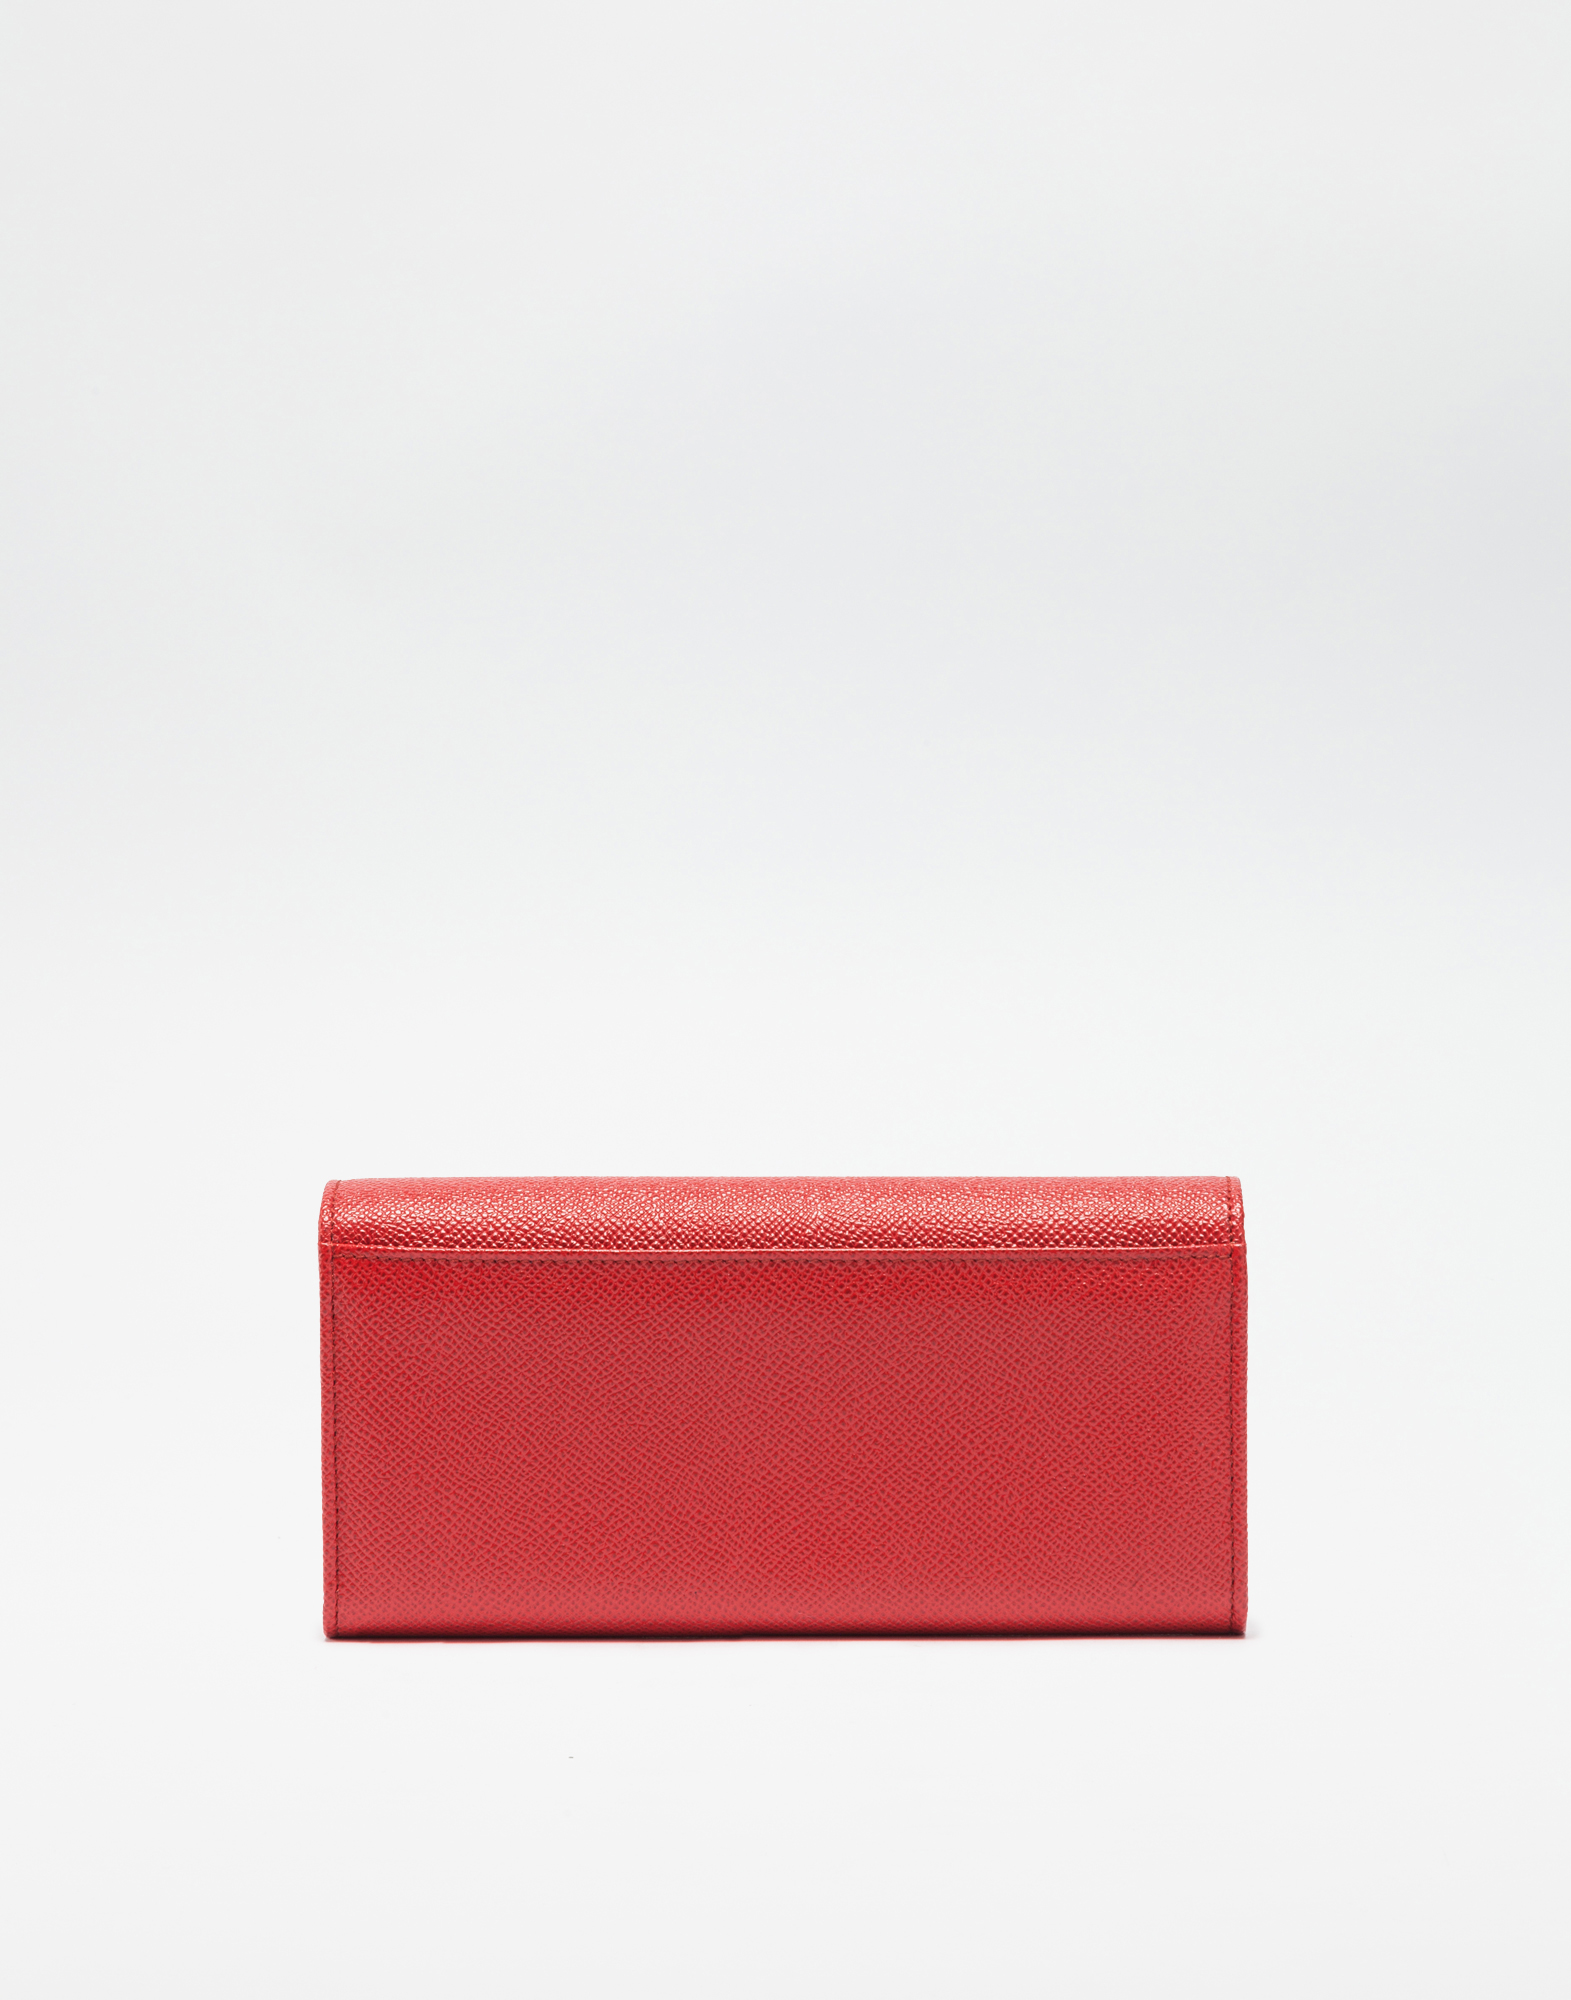 Dolce&Gabbana CONTINENTAL WALLET IN DAUPHINE LEATHER